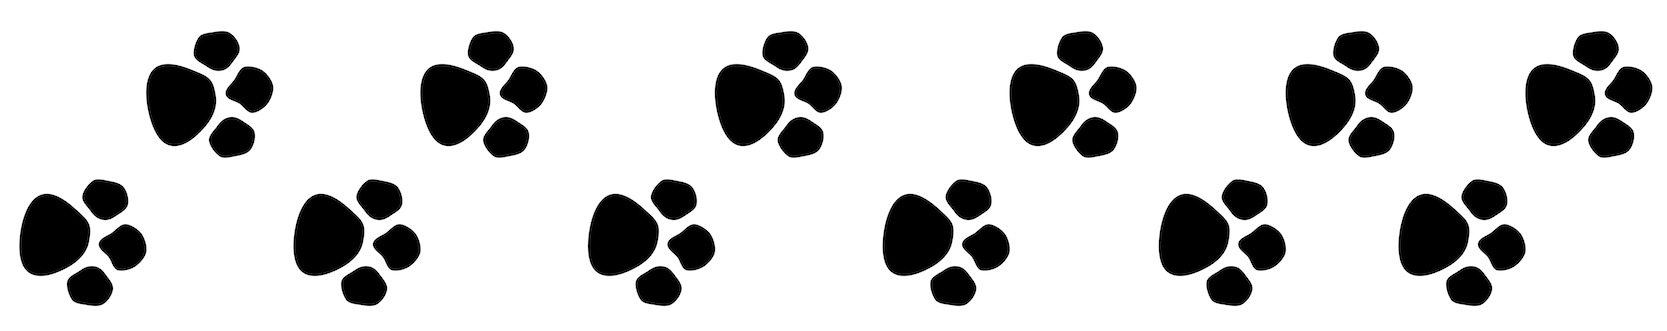 1667x331 Paw Print Outline Clipart